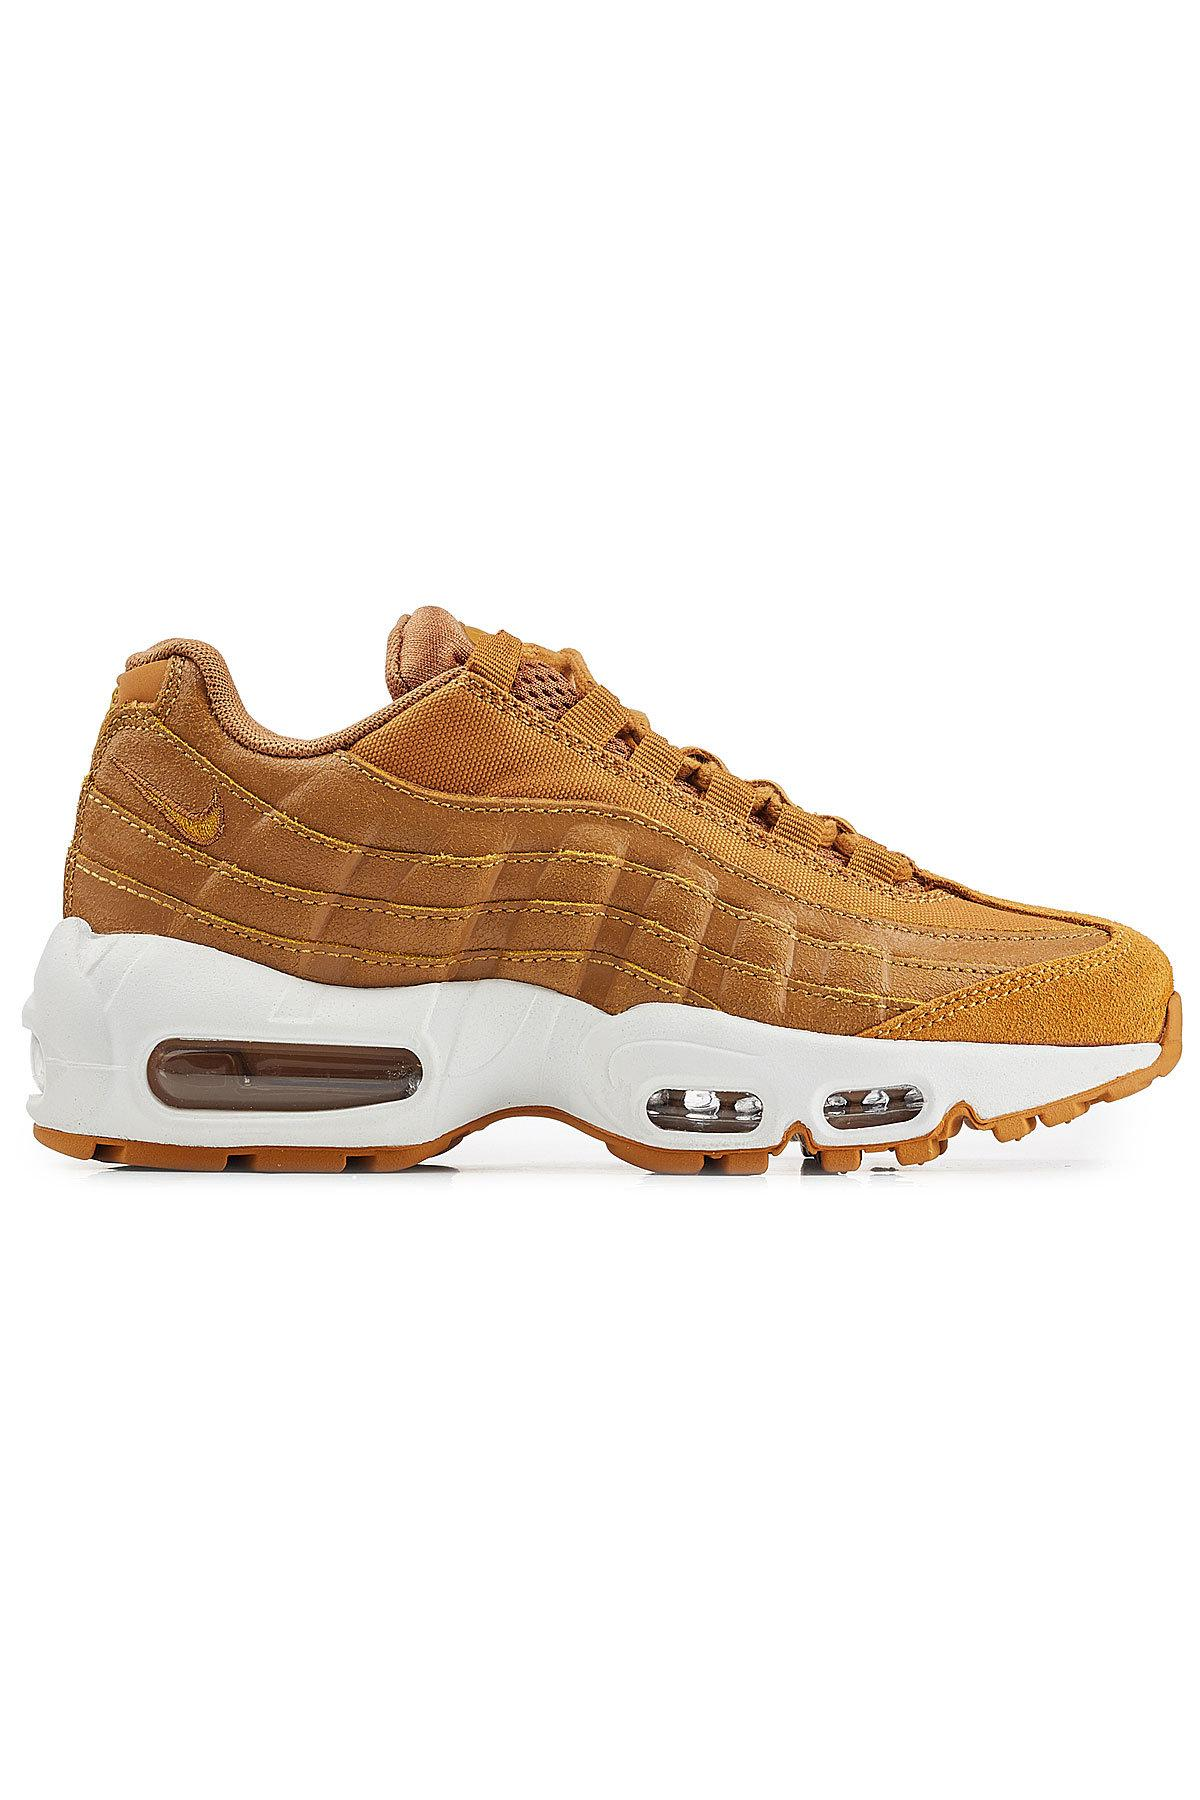 online store a5b73 ce150 ... canada nike multicolor air max 95 premium leather sneakers lyst. view  fullscreen 083ed af894 ...